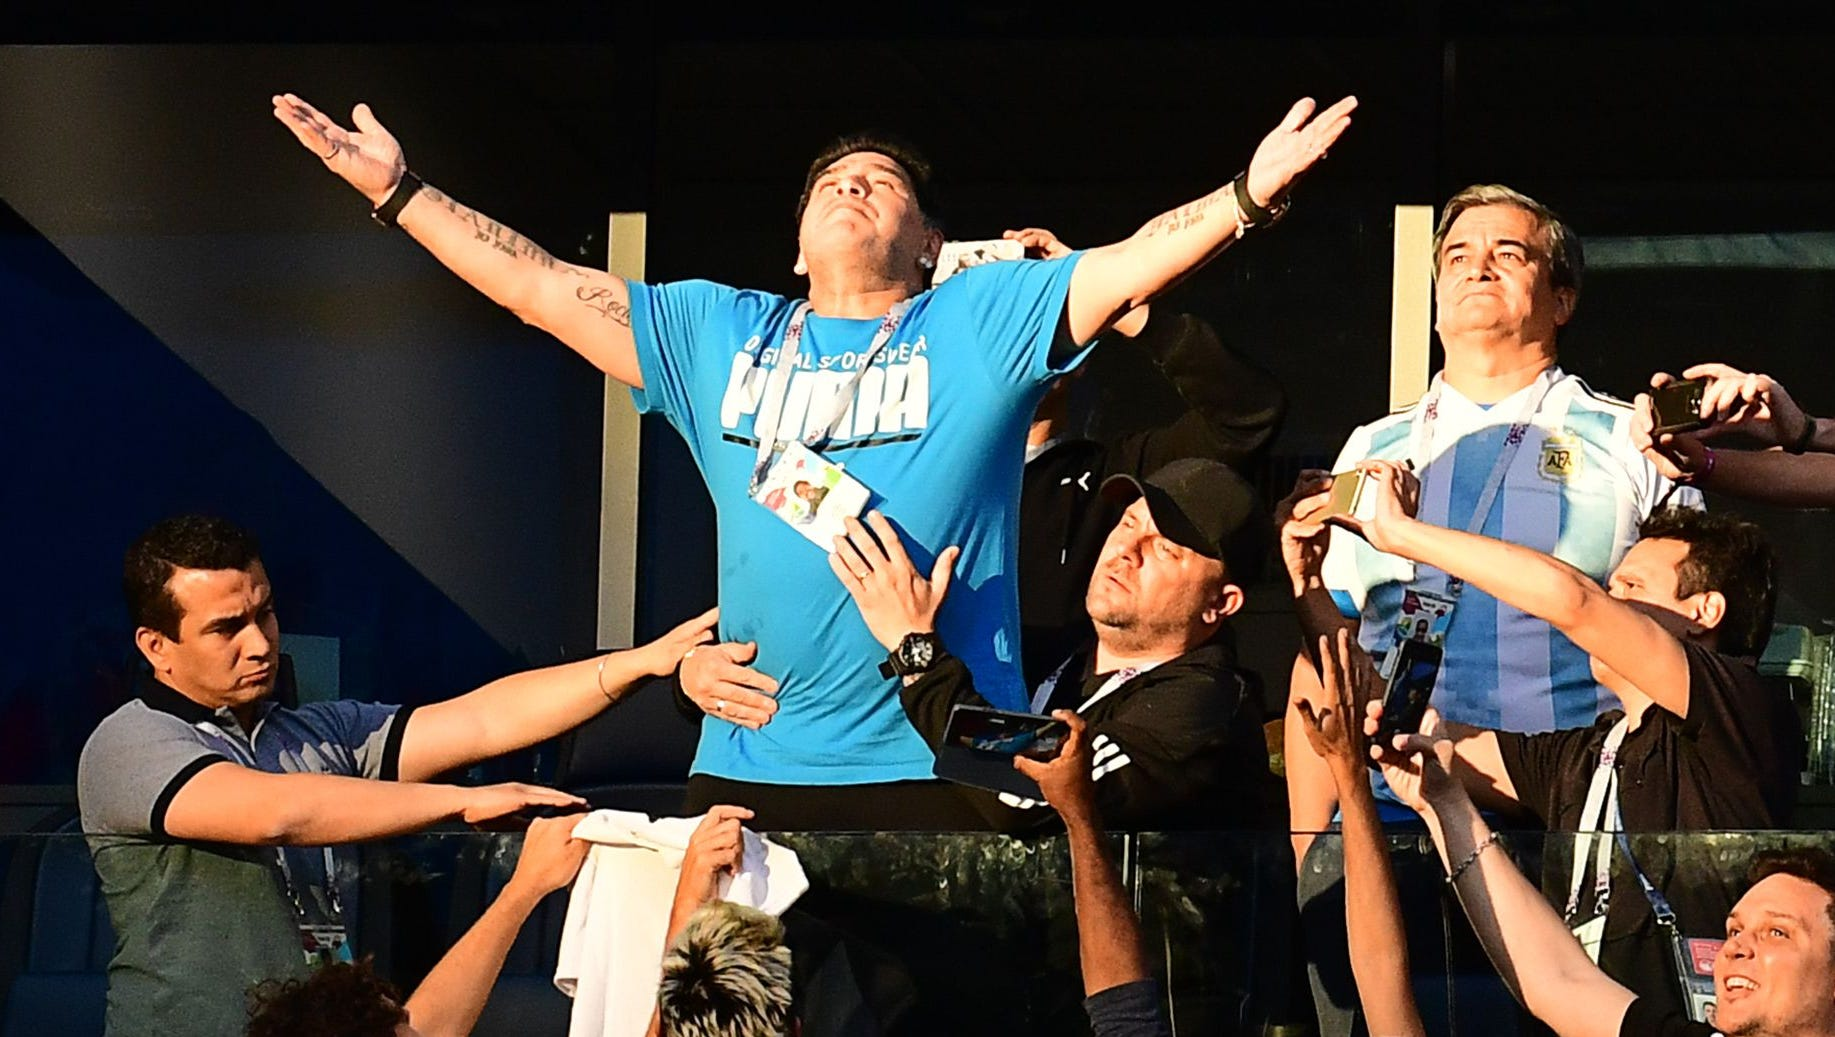 World Cup 2018 Diego Maradona Needs To Leave And Get Right